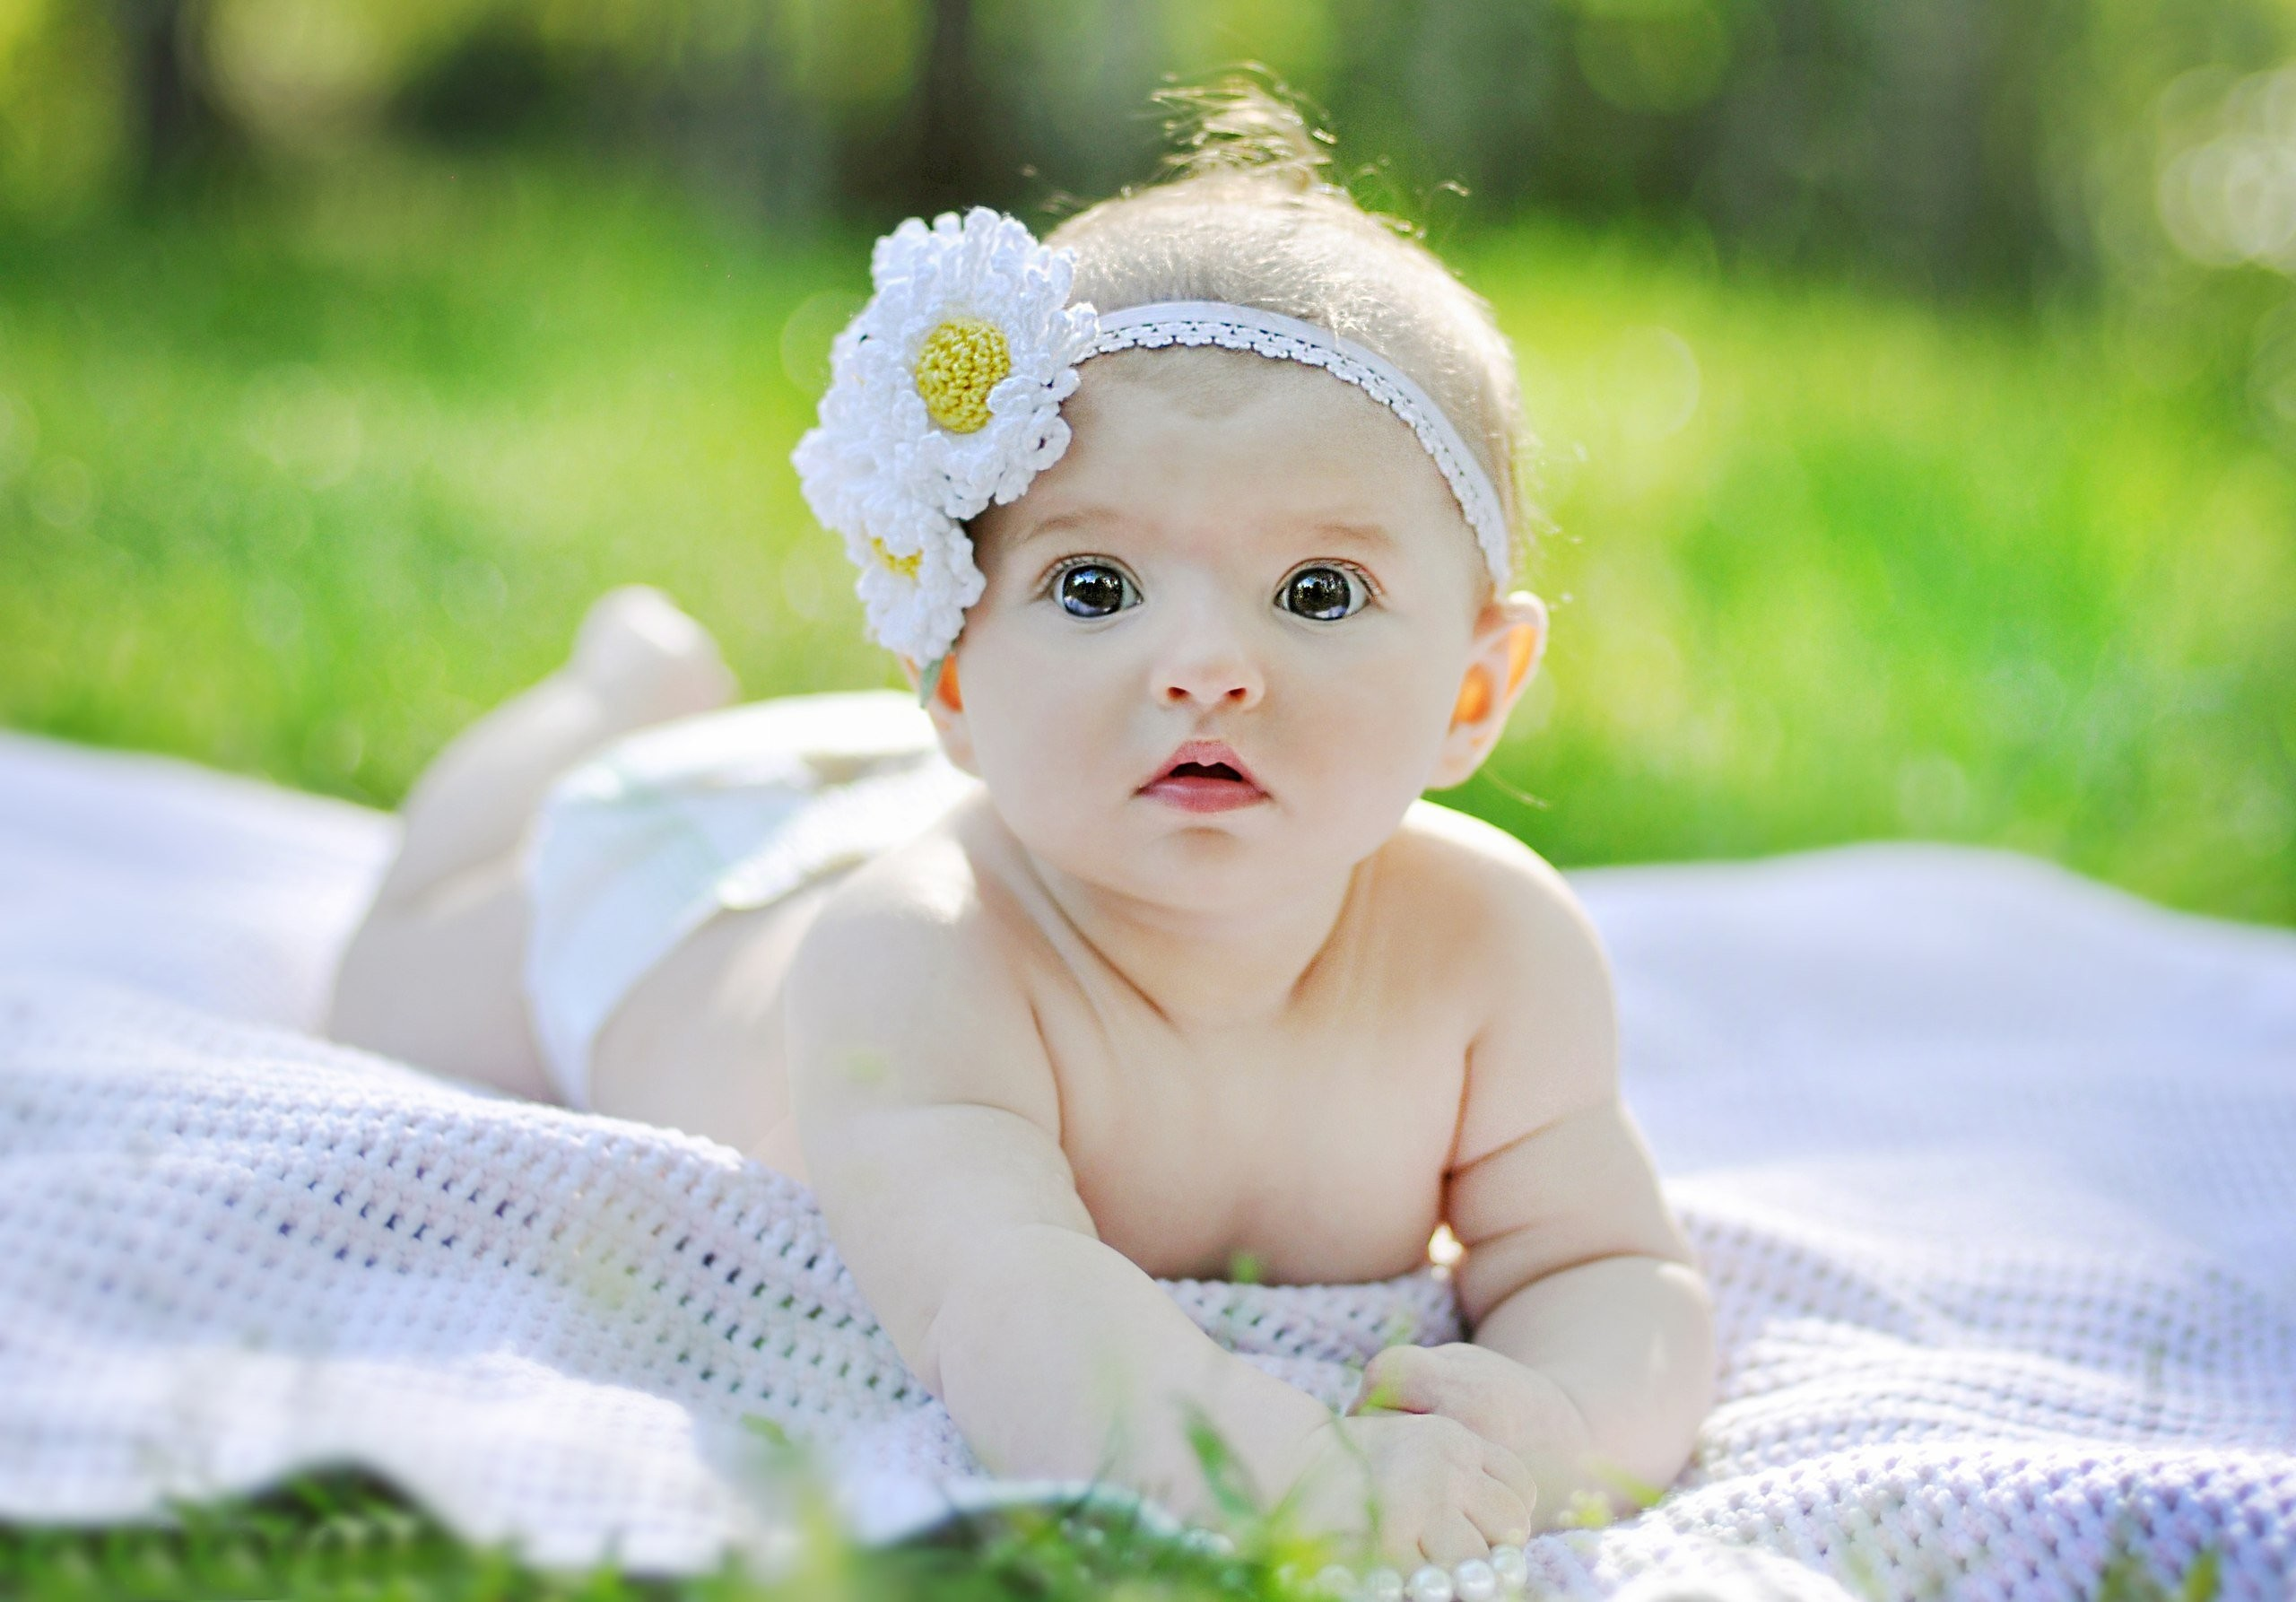 2880x1800 Cute Baby Wallpaper